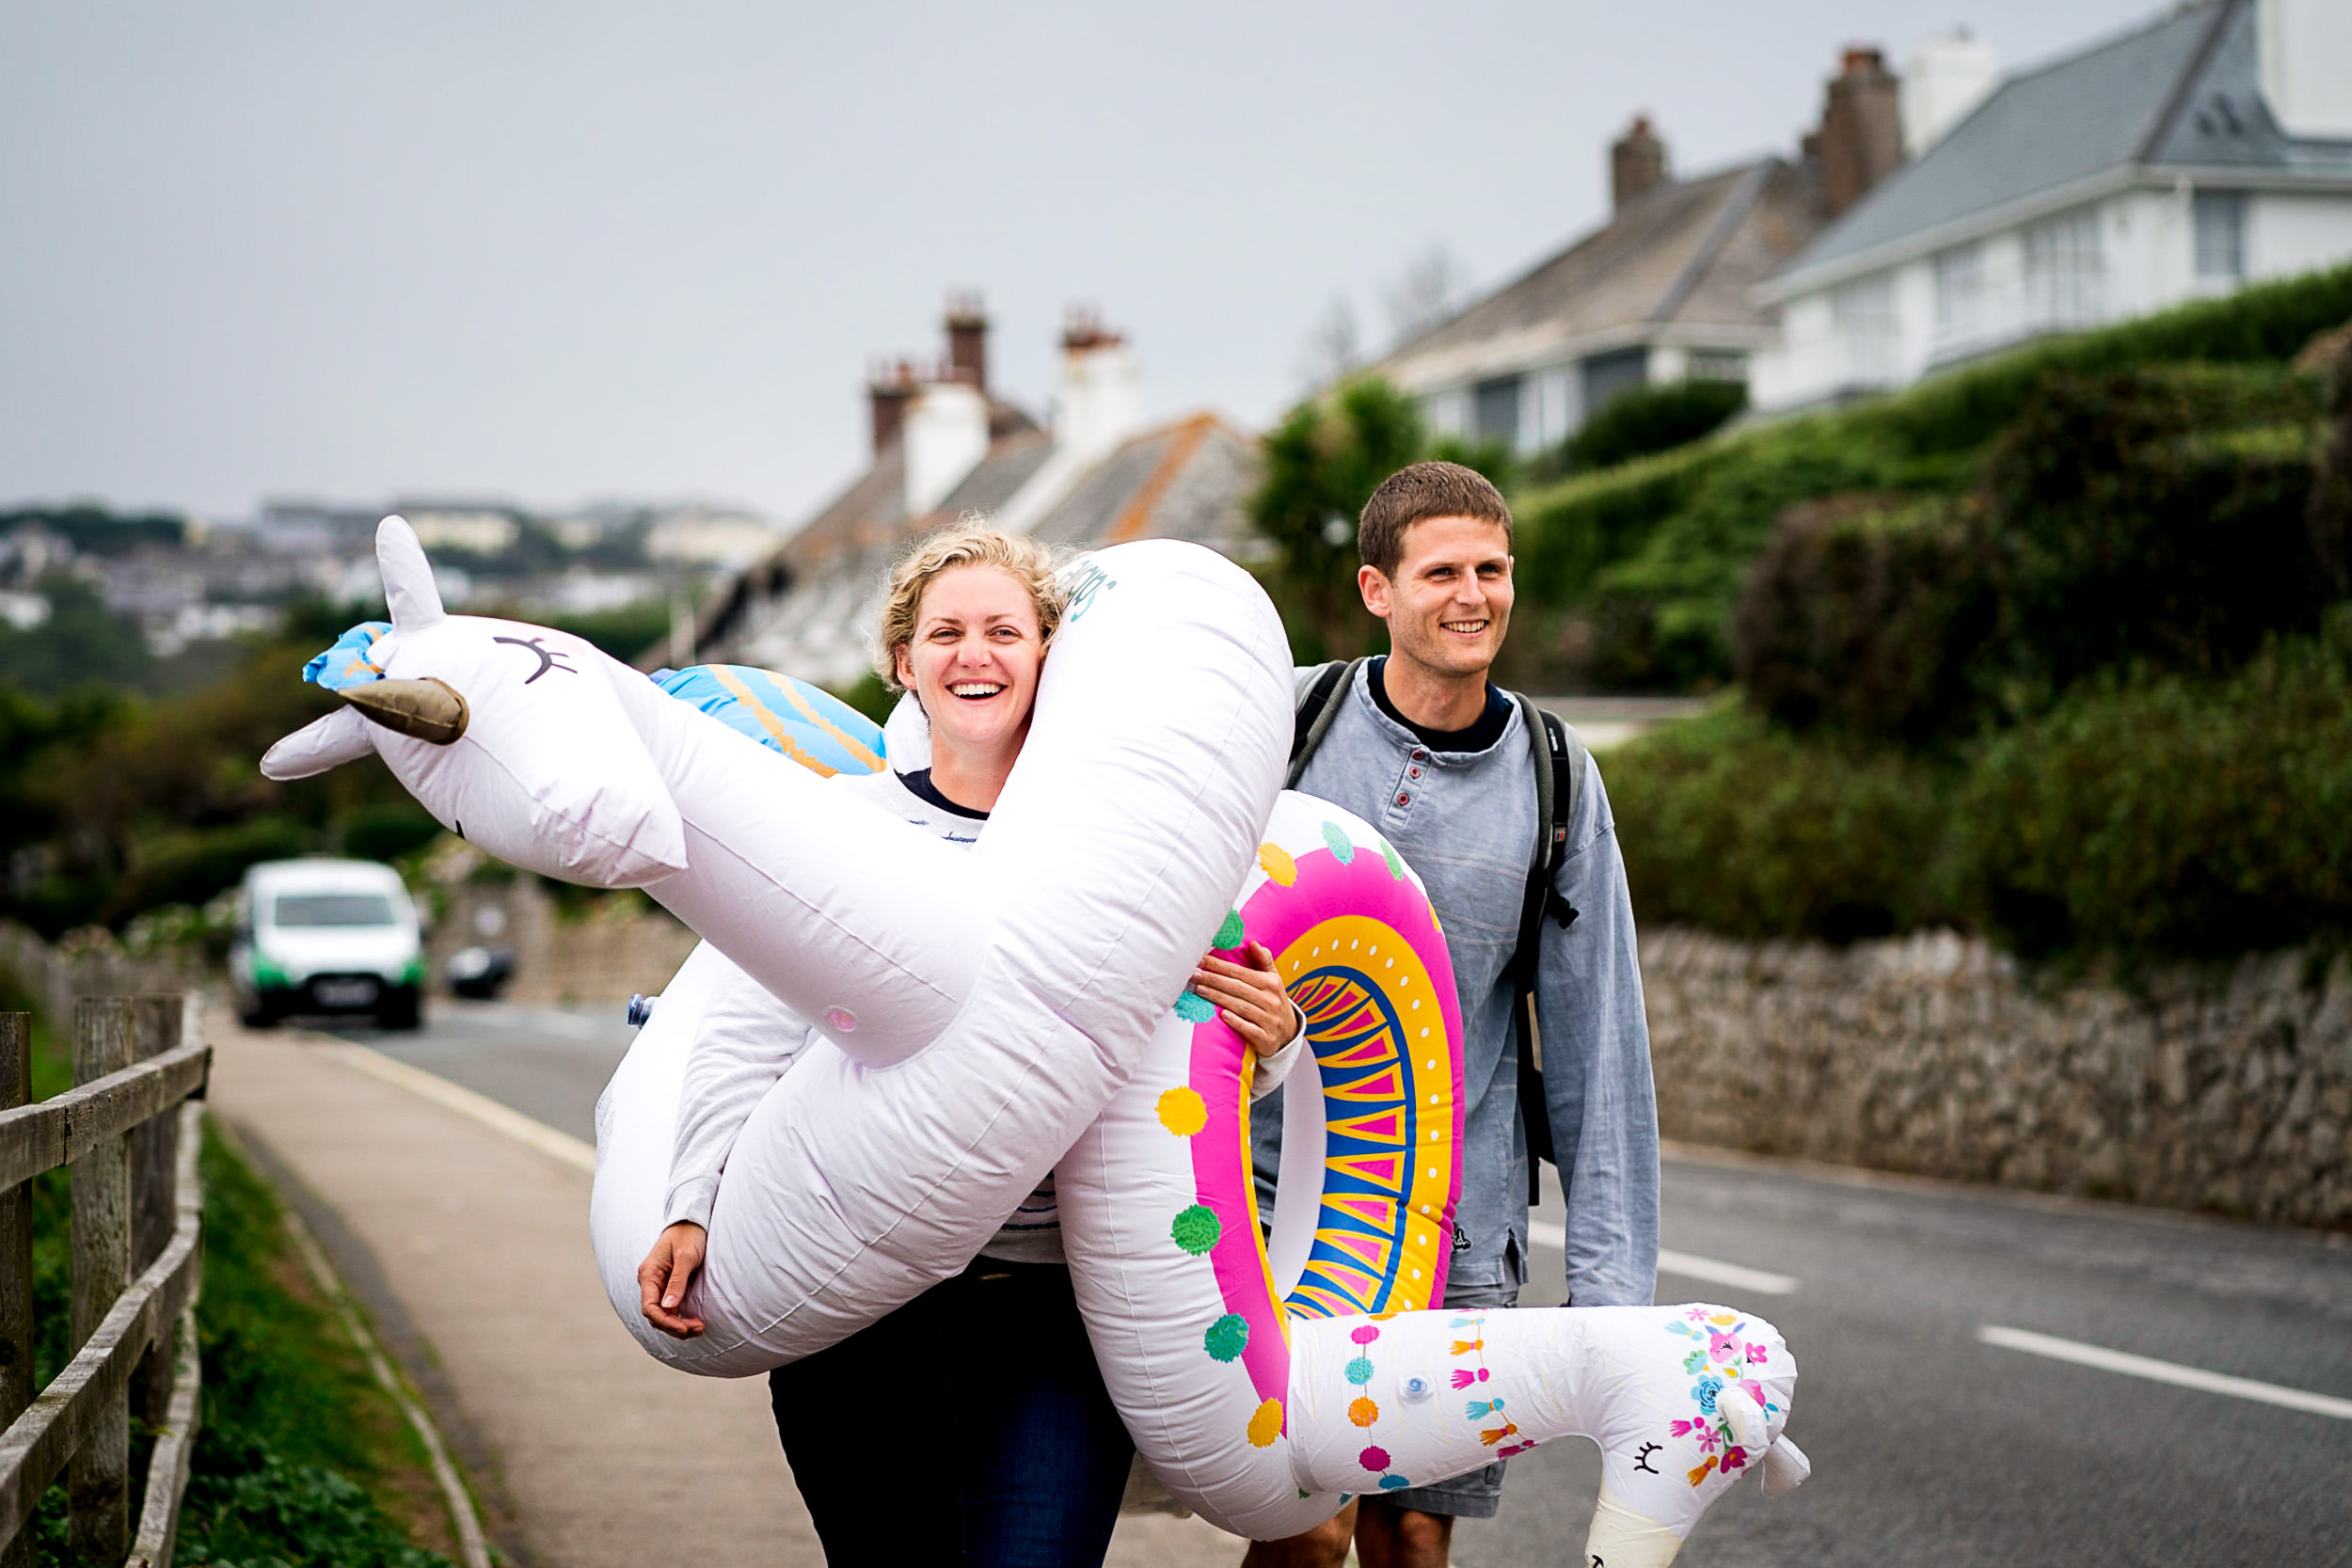 seaside wedding - cornwall wedding - st mawes wedding - seaside micro wedding - fun wedding